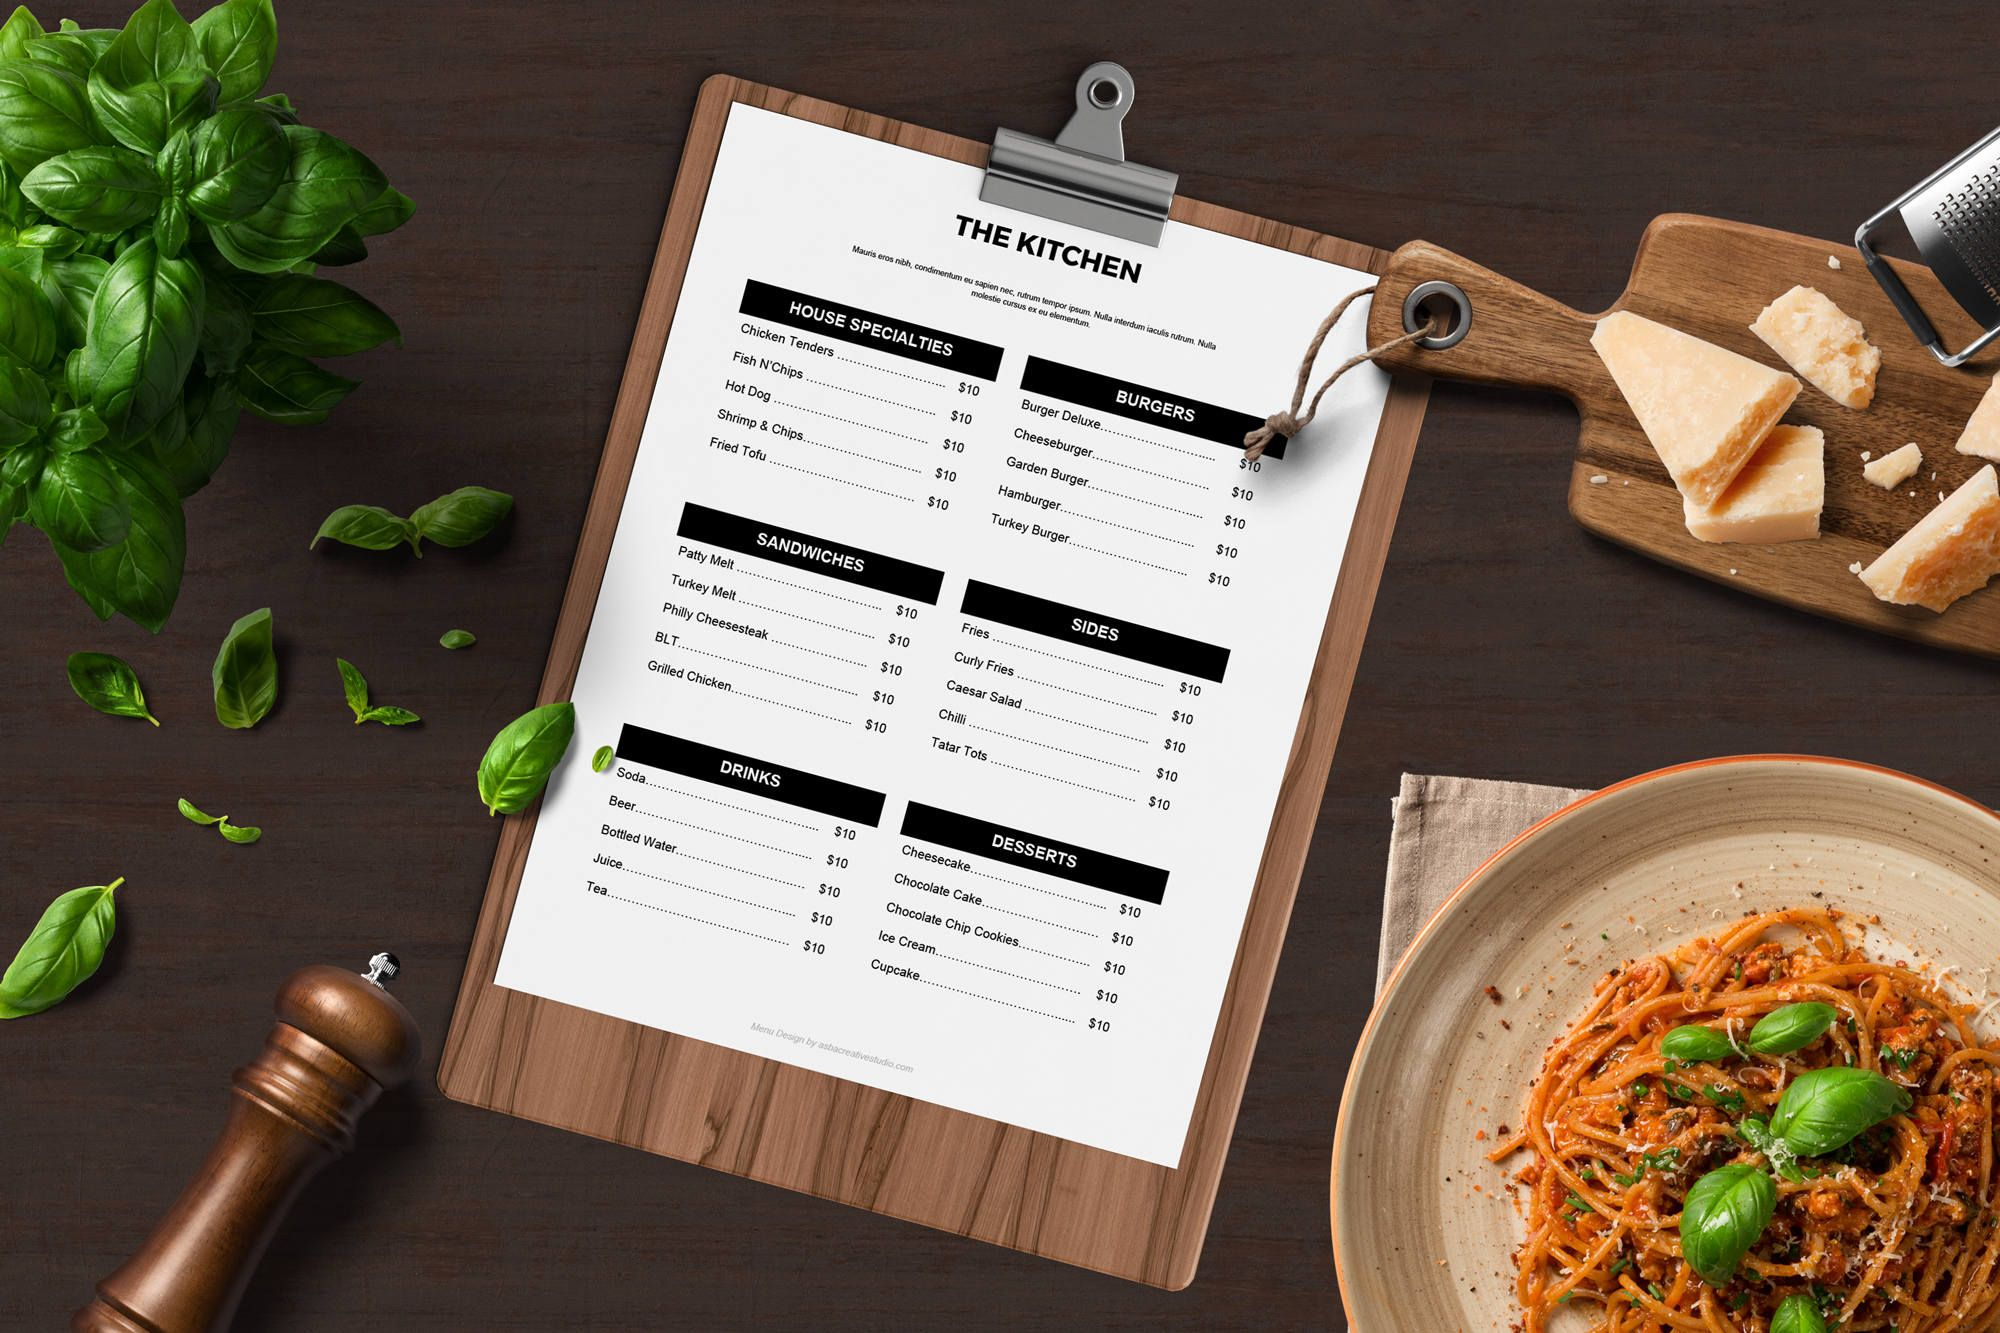 restaurant website design dining menu printable menu small restaurants cafe food menu templates bakery cafe food truck bakeries